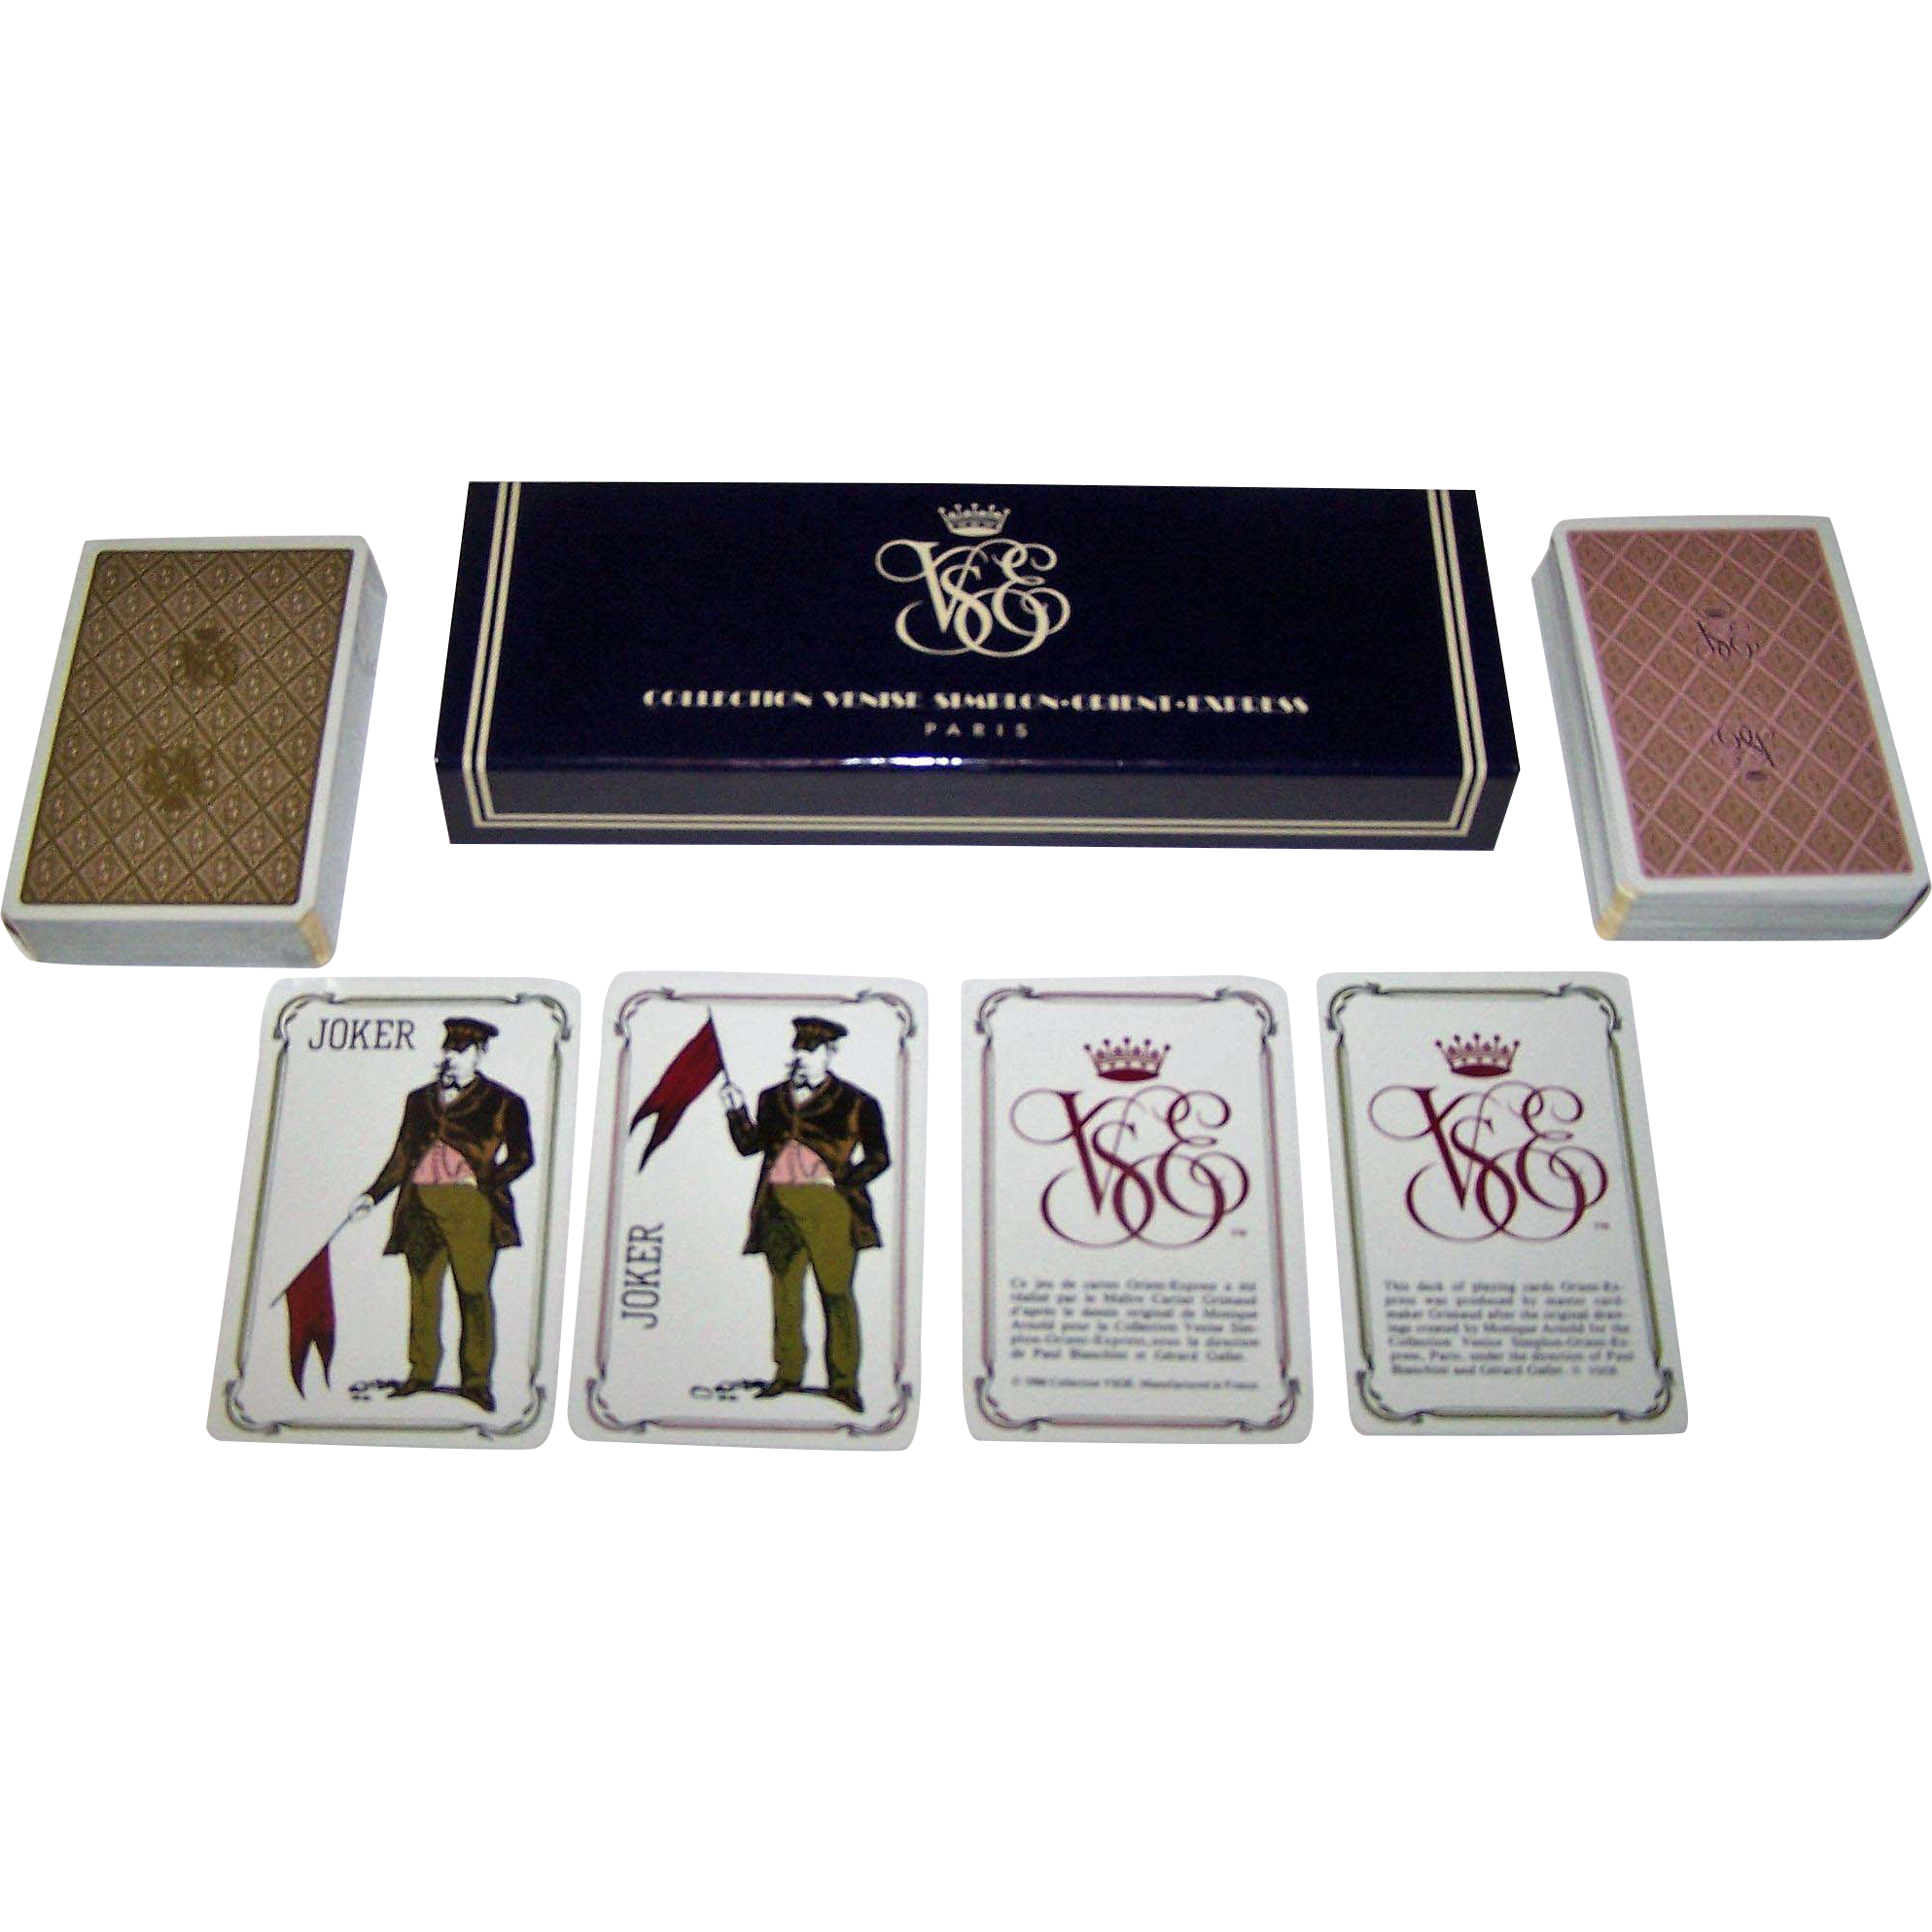 """Double Deck Grimaud """"Collection Venise Simplon-Orient Express Playing Cards,"""" Gerard Gallet Designs, c.1984"""